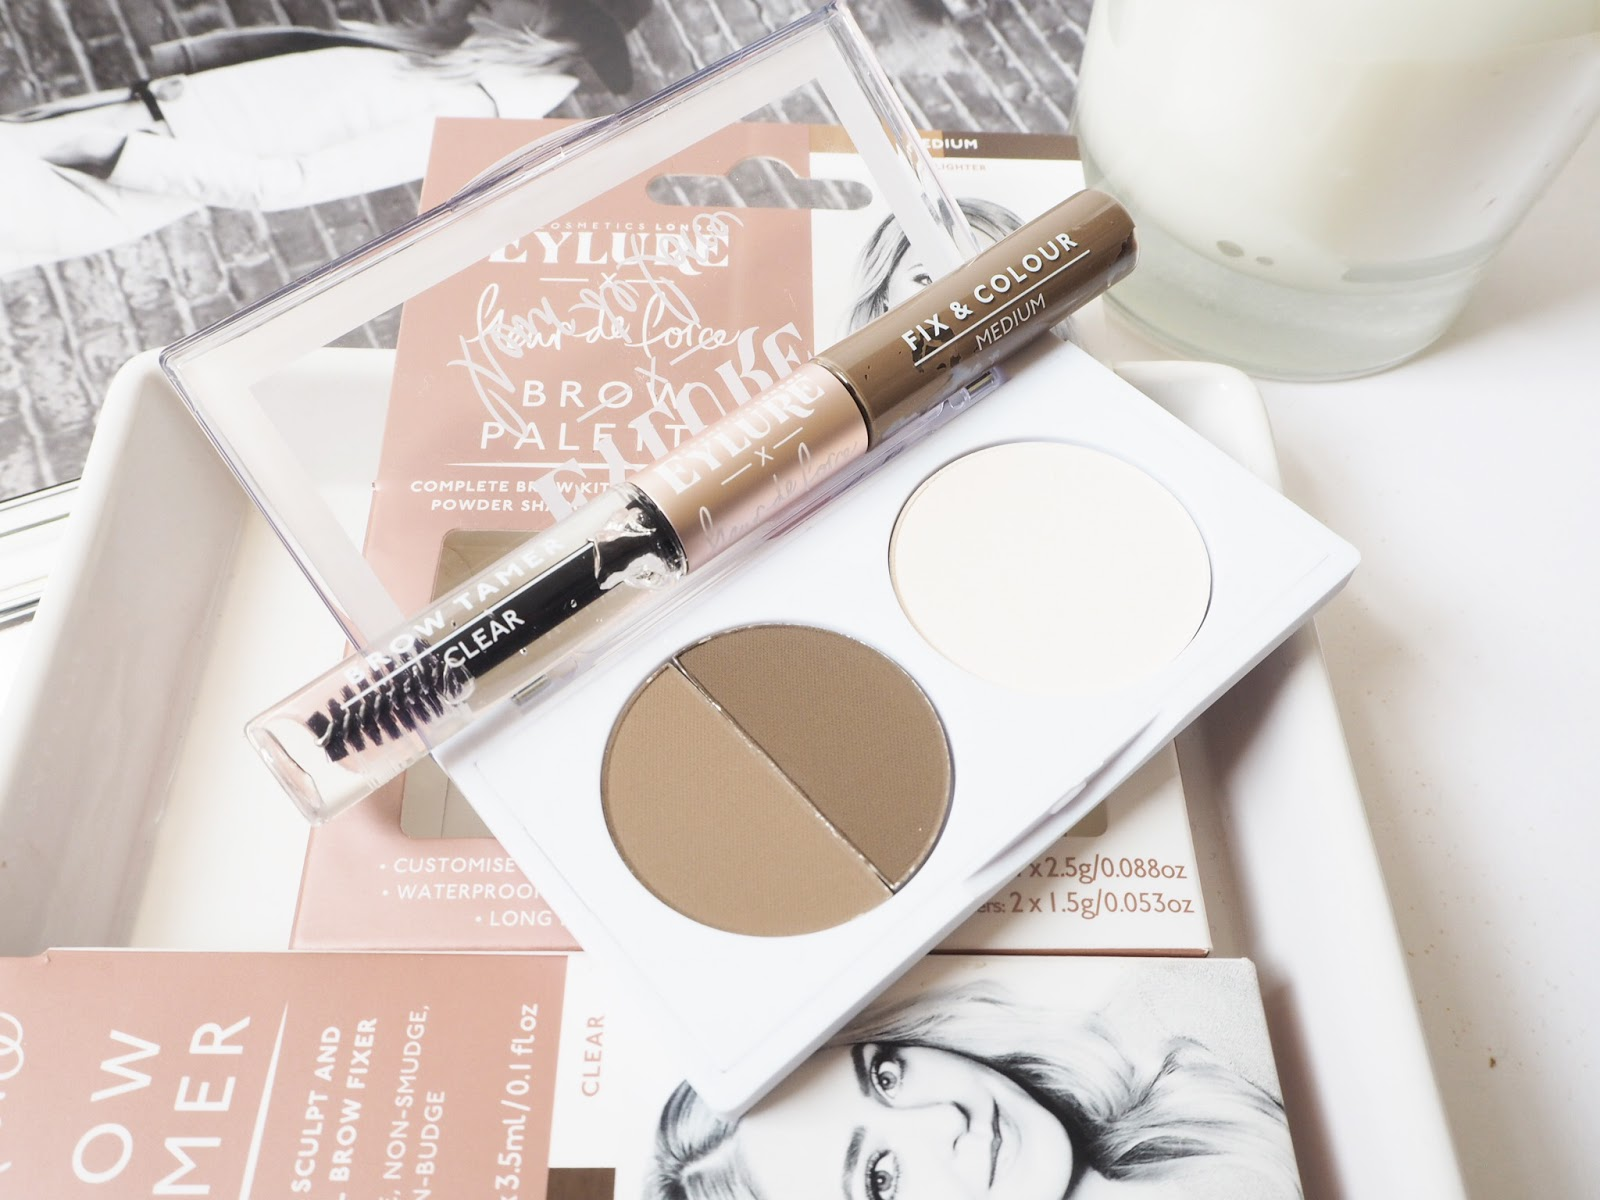 8e89986e57e ... and if used sparingly and blended well, I think it's the most natural  way to fill in any gaps in the brows. The Fleur De Force by Eylure ...